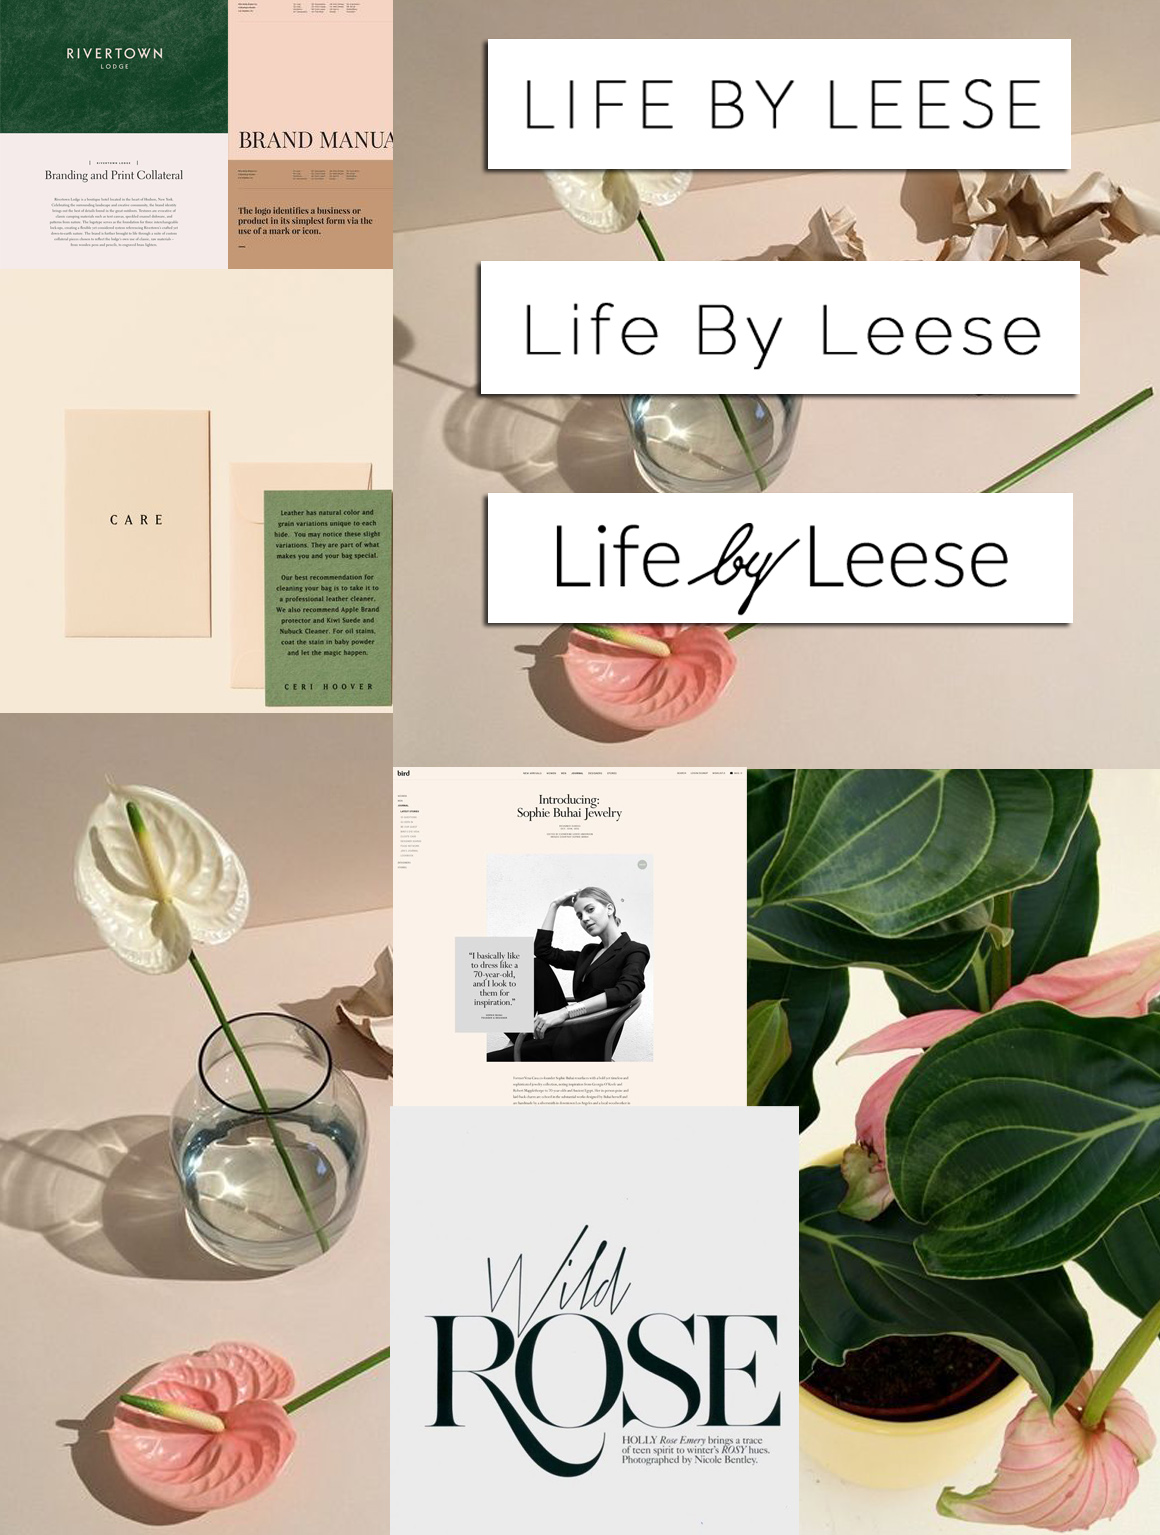 Mood board , logo concepts for Life by leese